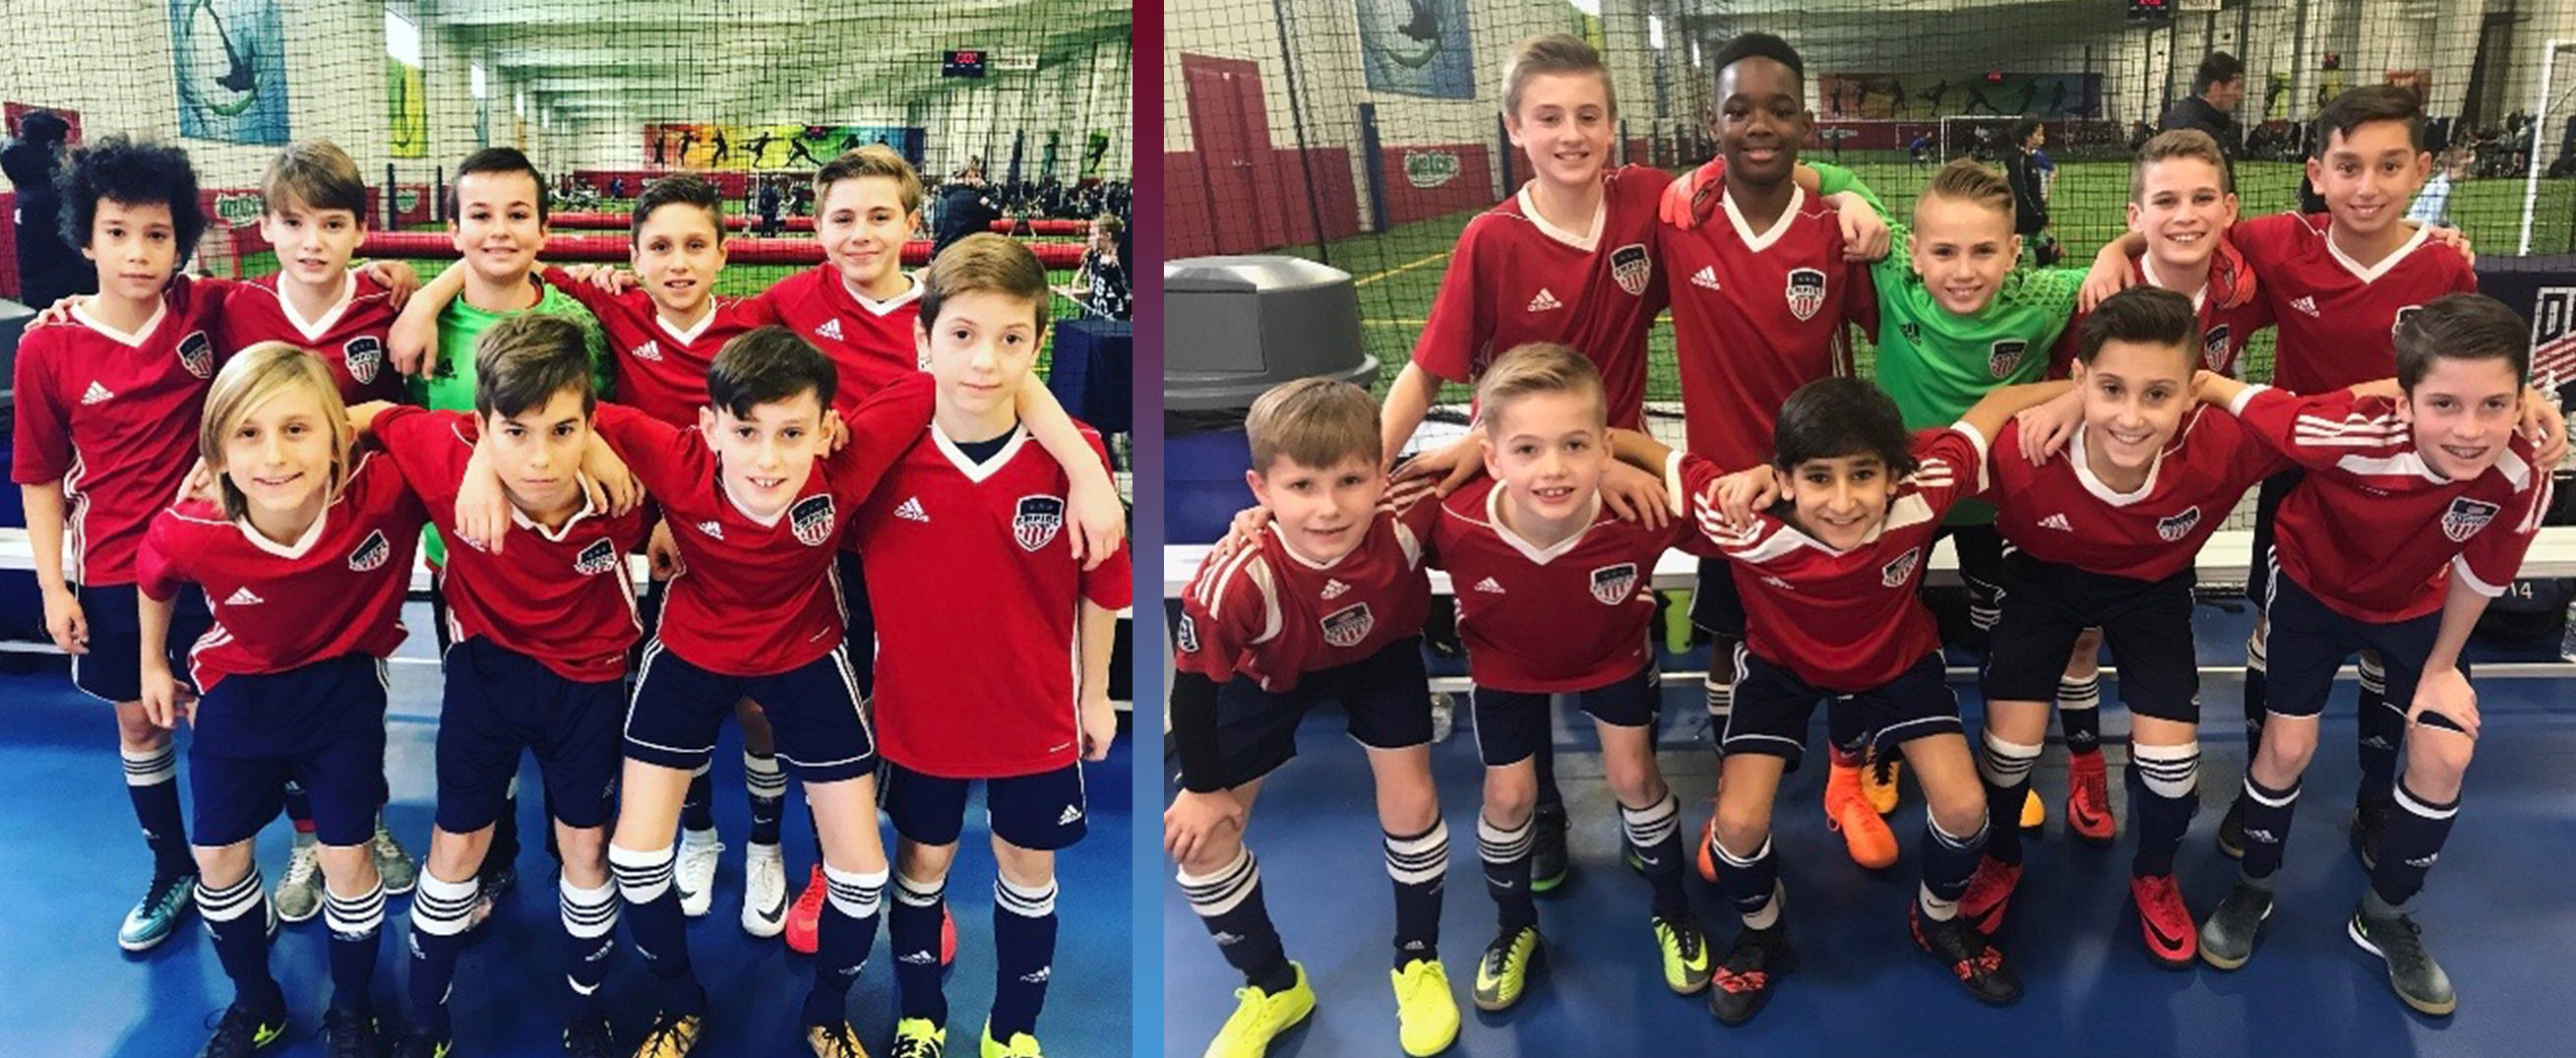 Empire United Pre-Academy Compete in the US Soccer Development Academy Regional Futsal Event